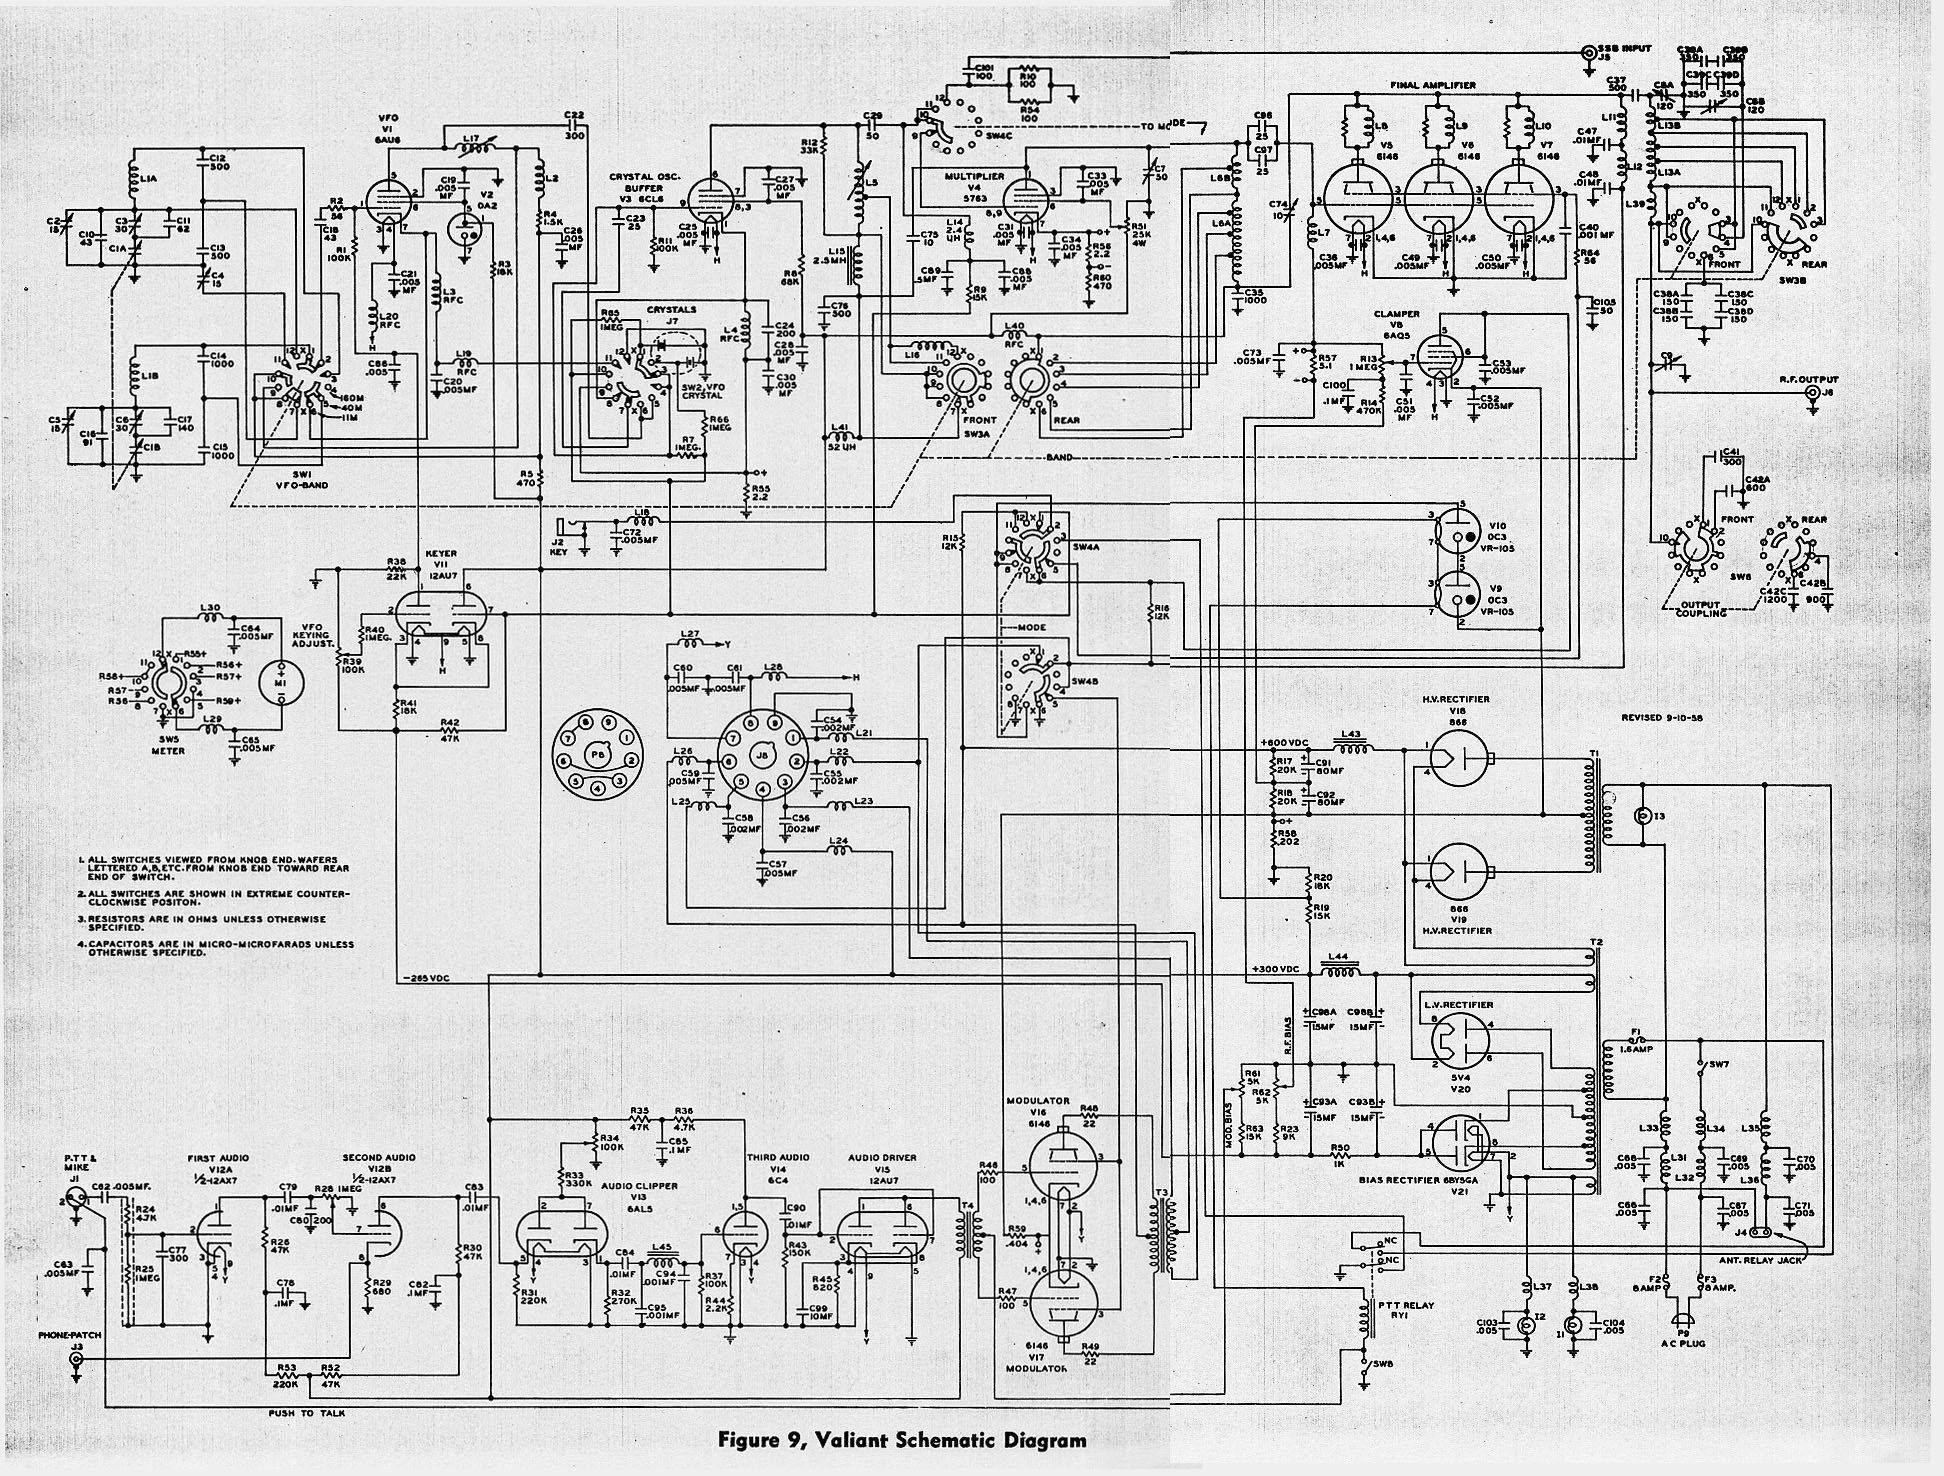 radio_Johnson_Viking_Valiant_schematic viking wiring diagrams viking parts diagram \u2022 wiring diagram  at virtualis.co